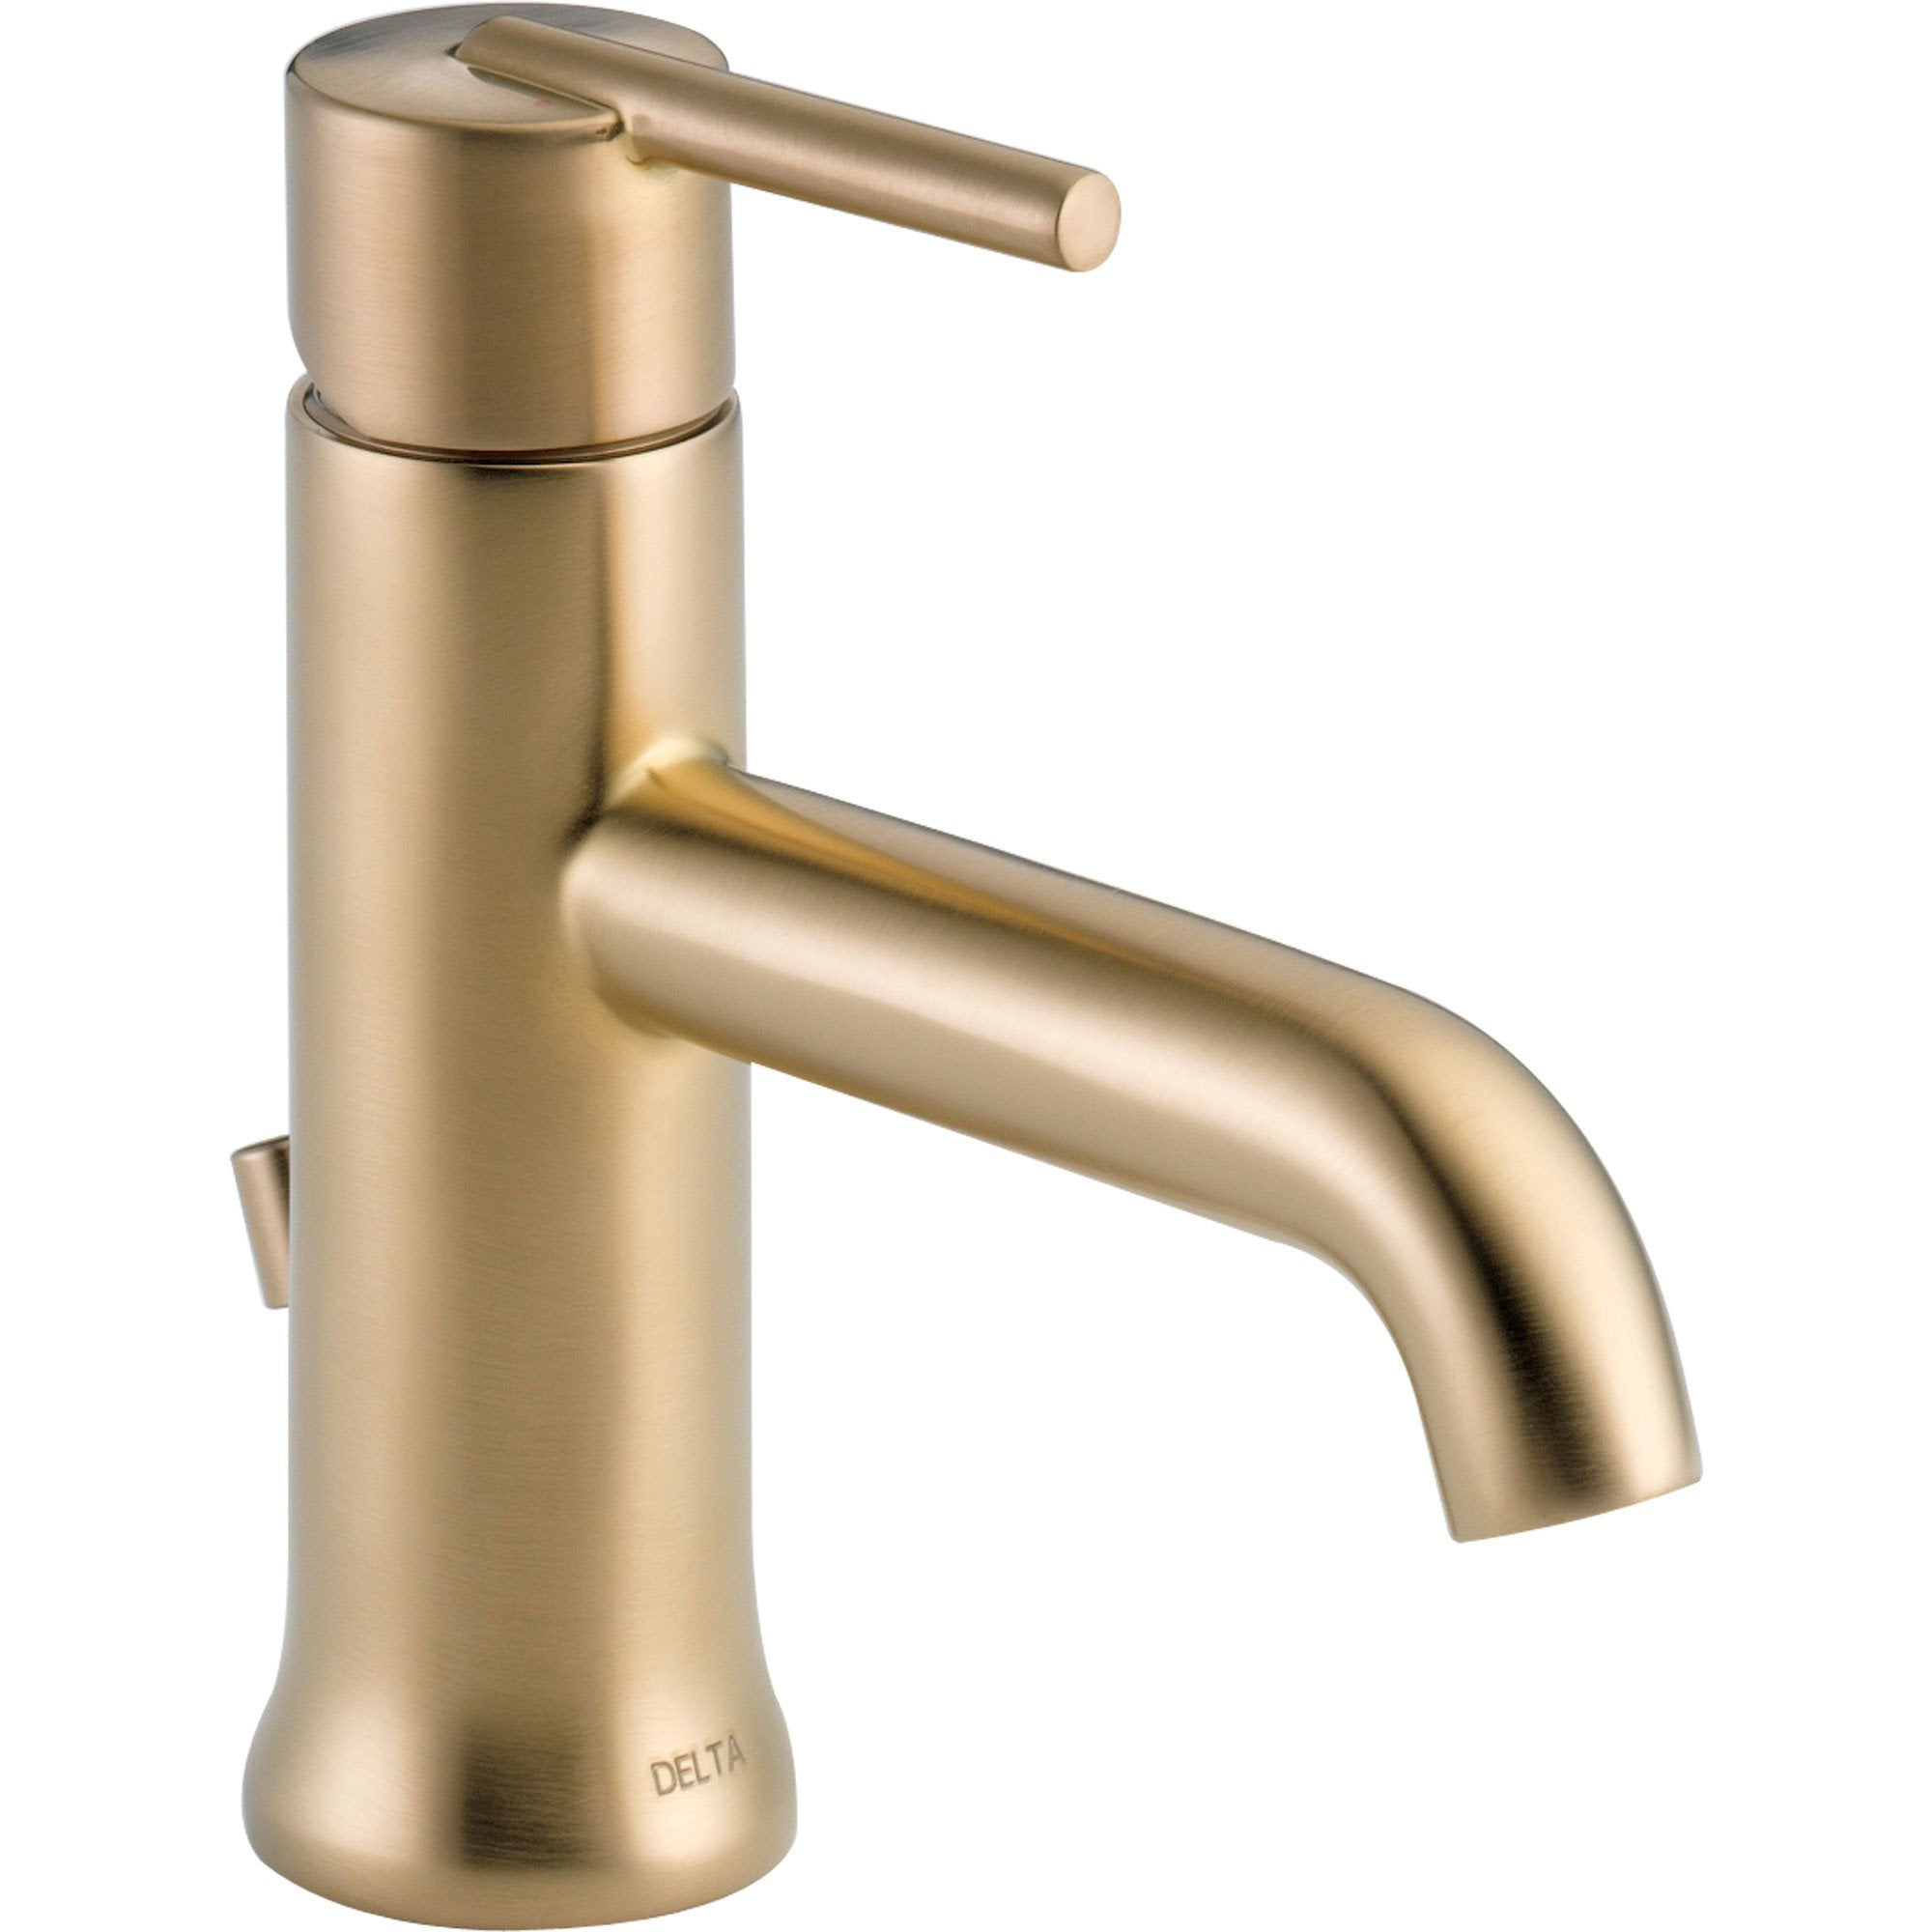 Delta Trinsic Modern Single Handle Champagne Bronze Bathroom Faucet 590139